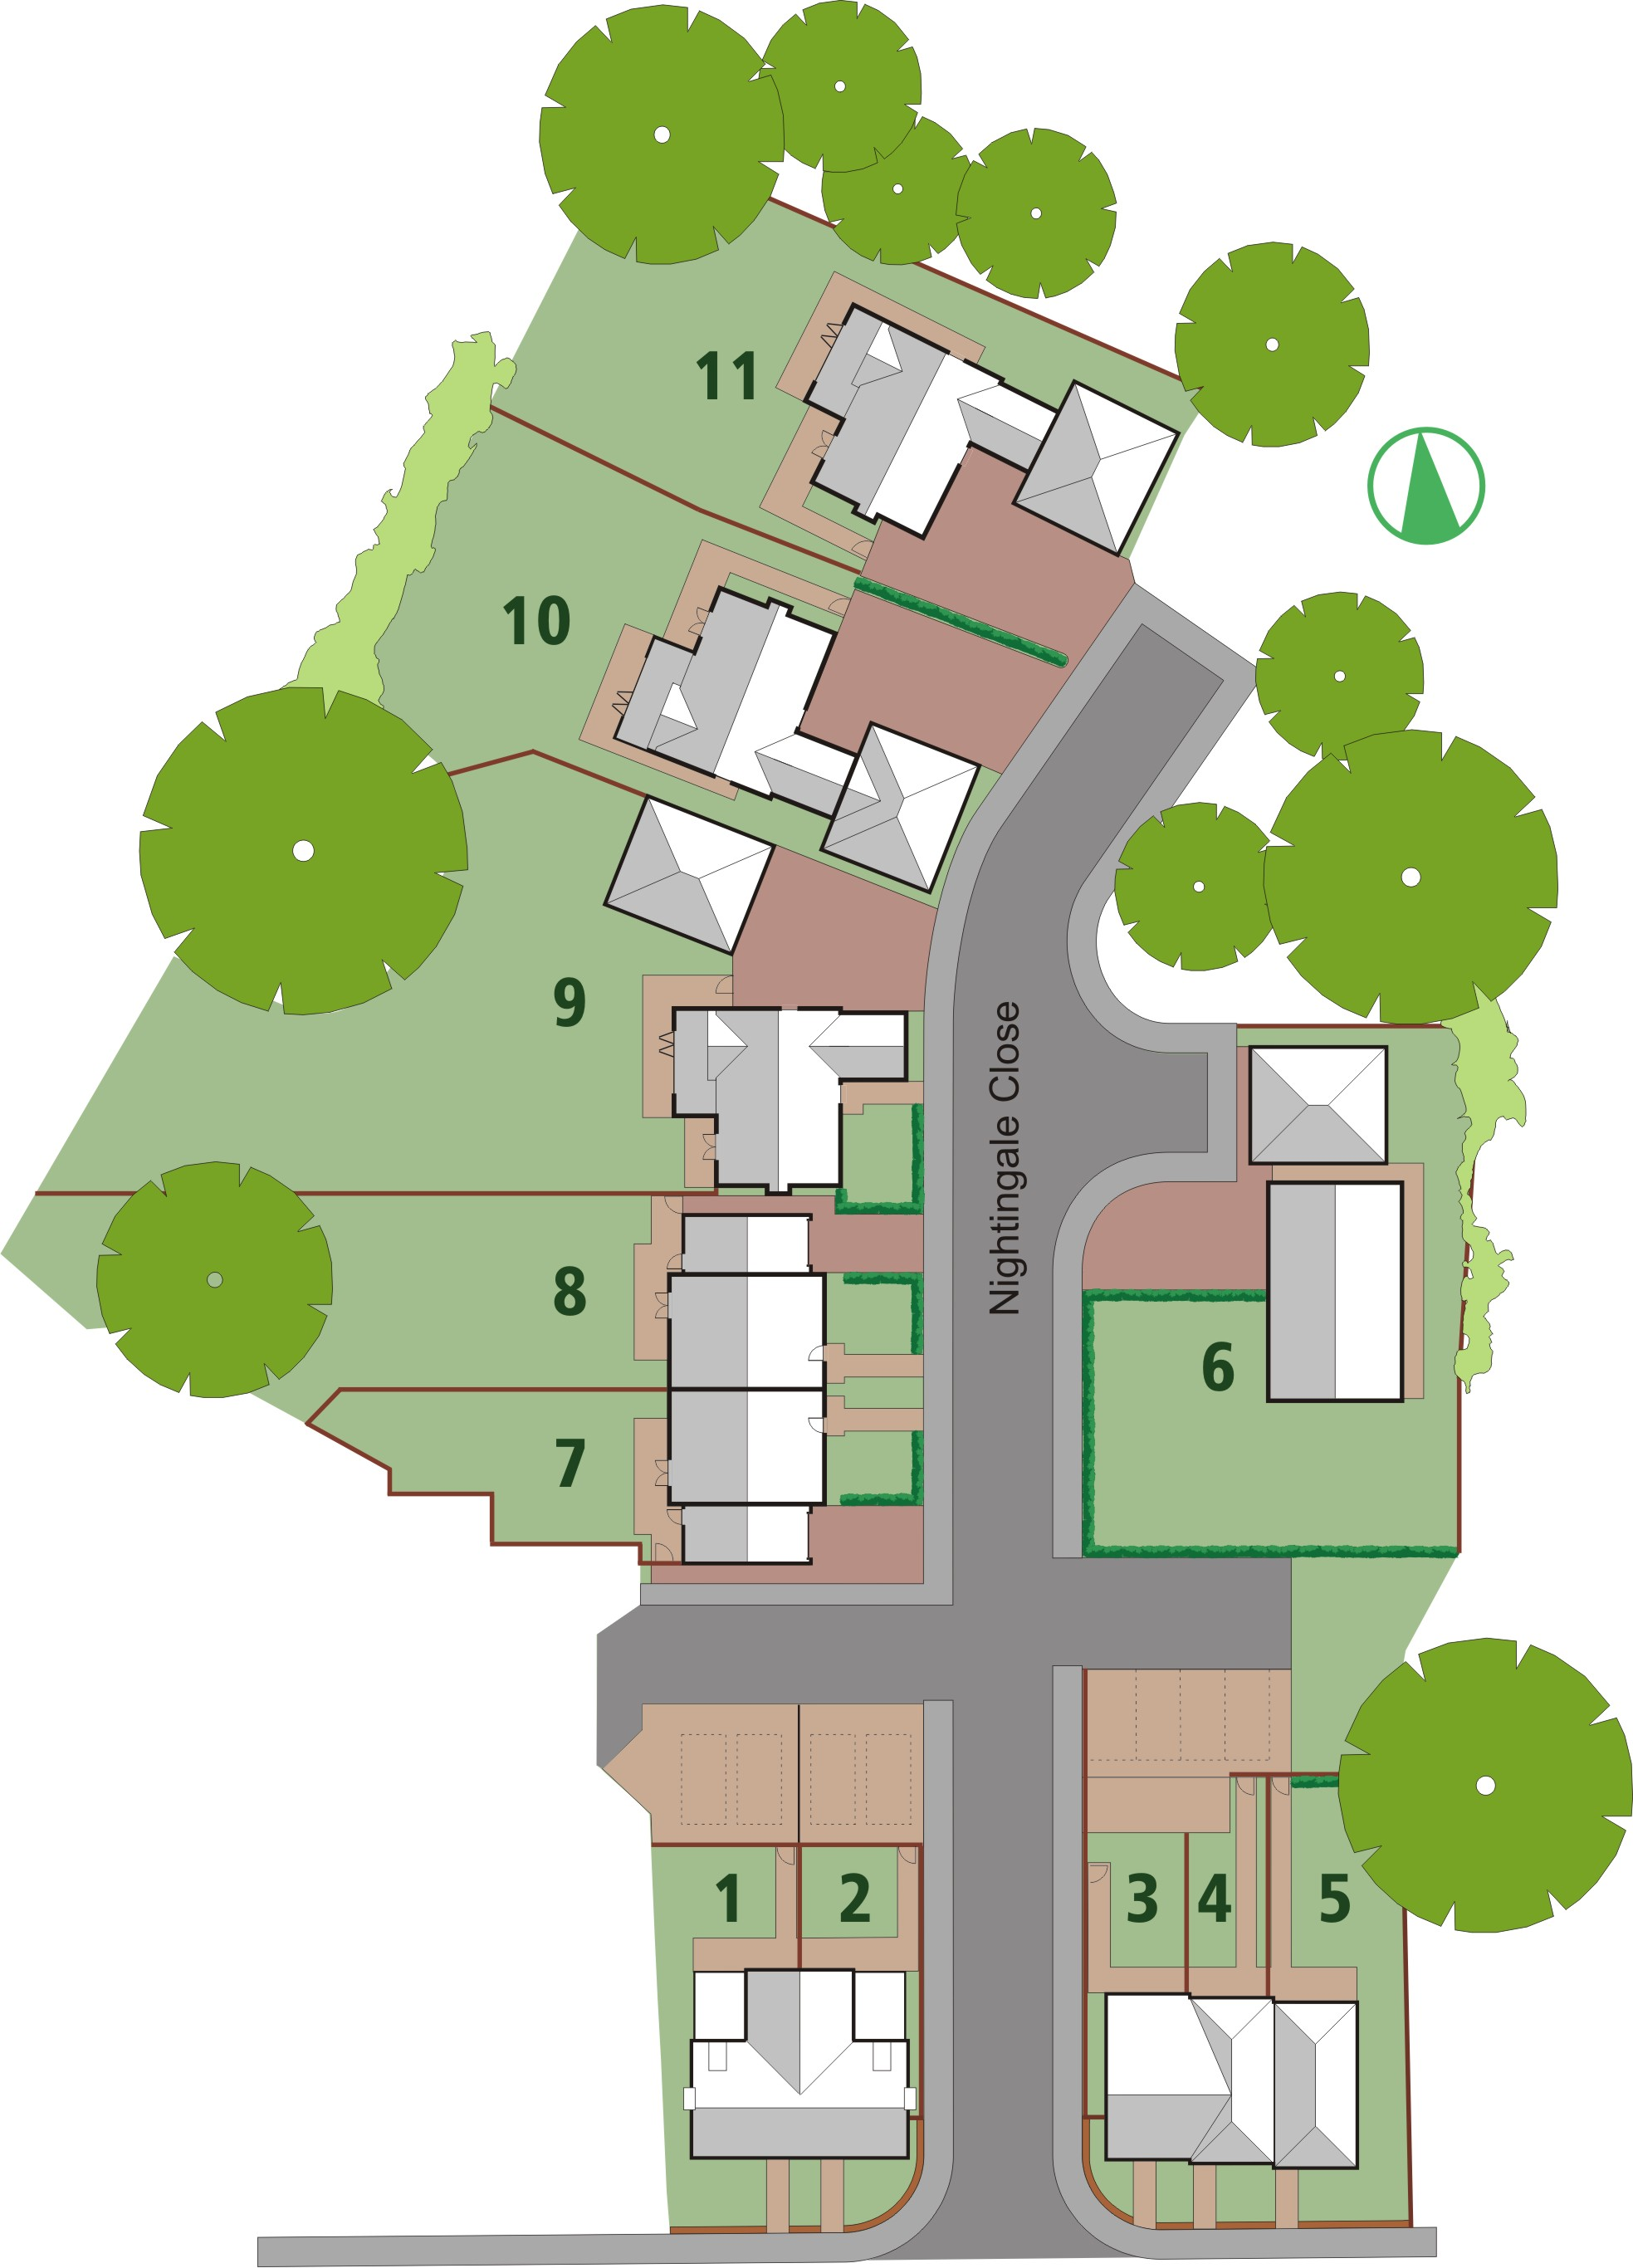 Layout of The Nightingales, Melton, Suffolk, IP12 1GY Development